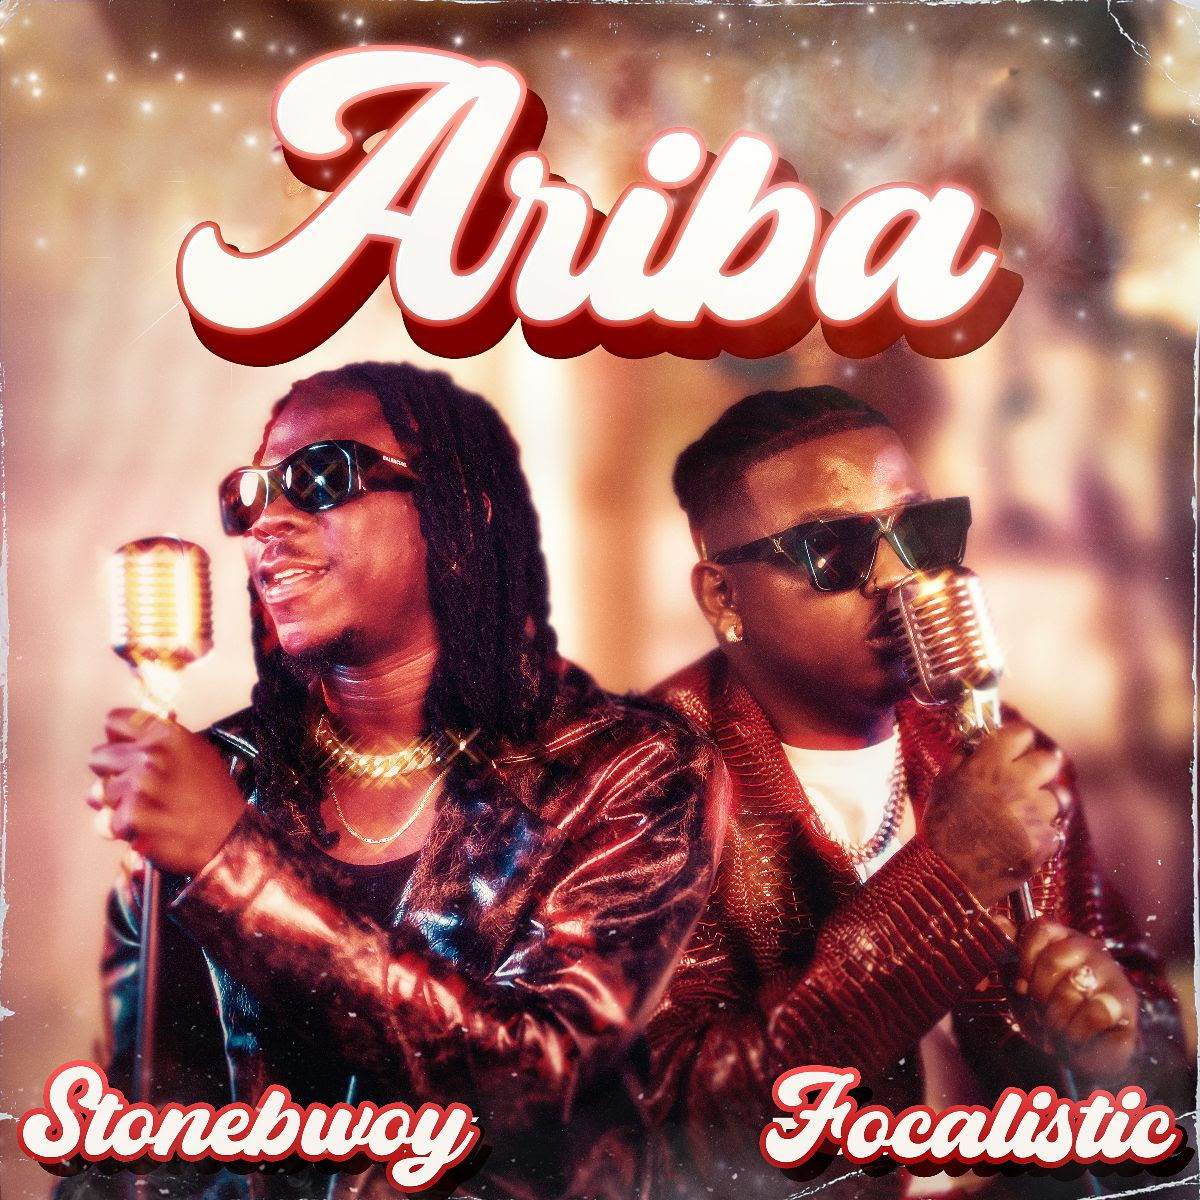 Stonebwoy Teams Up With Focalistic On Catchy New Single ''Ariba'